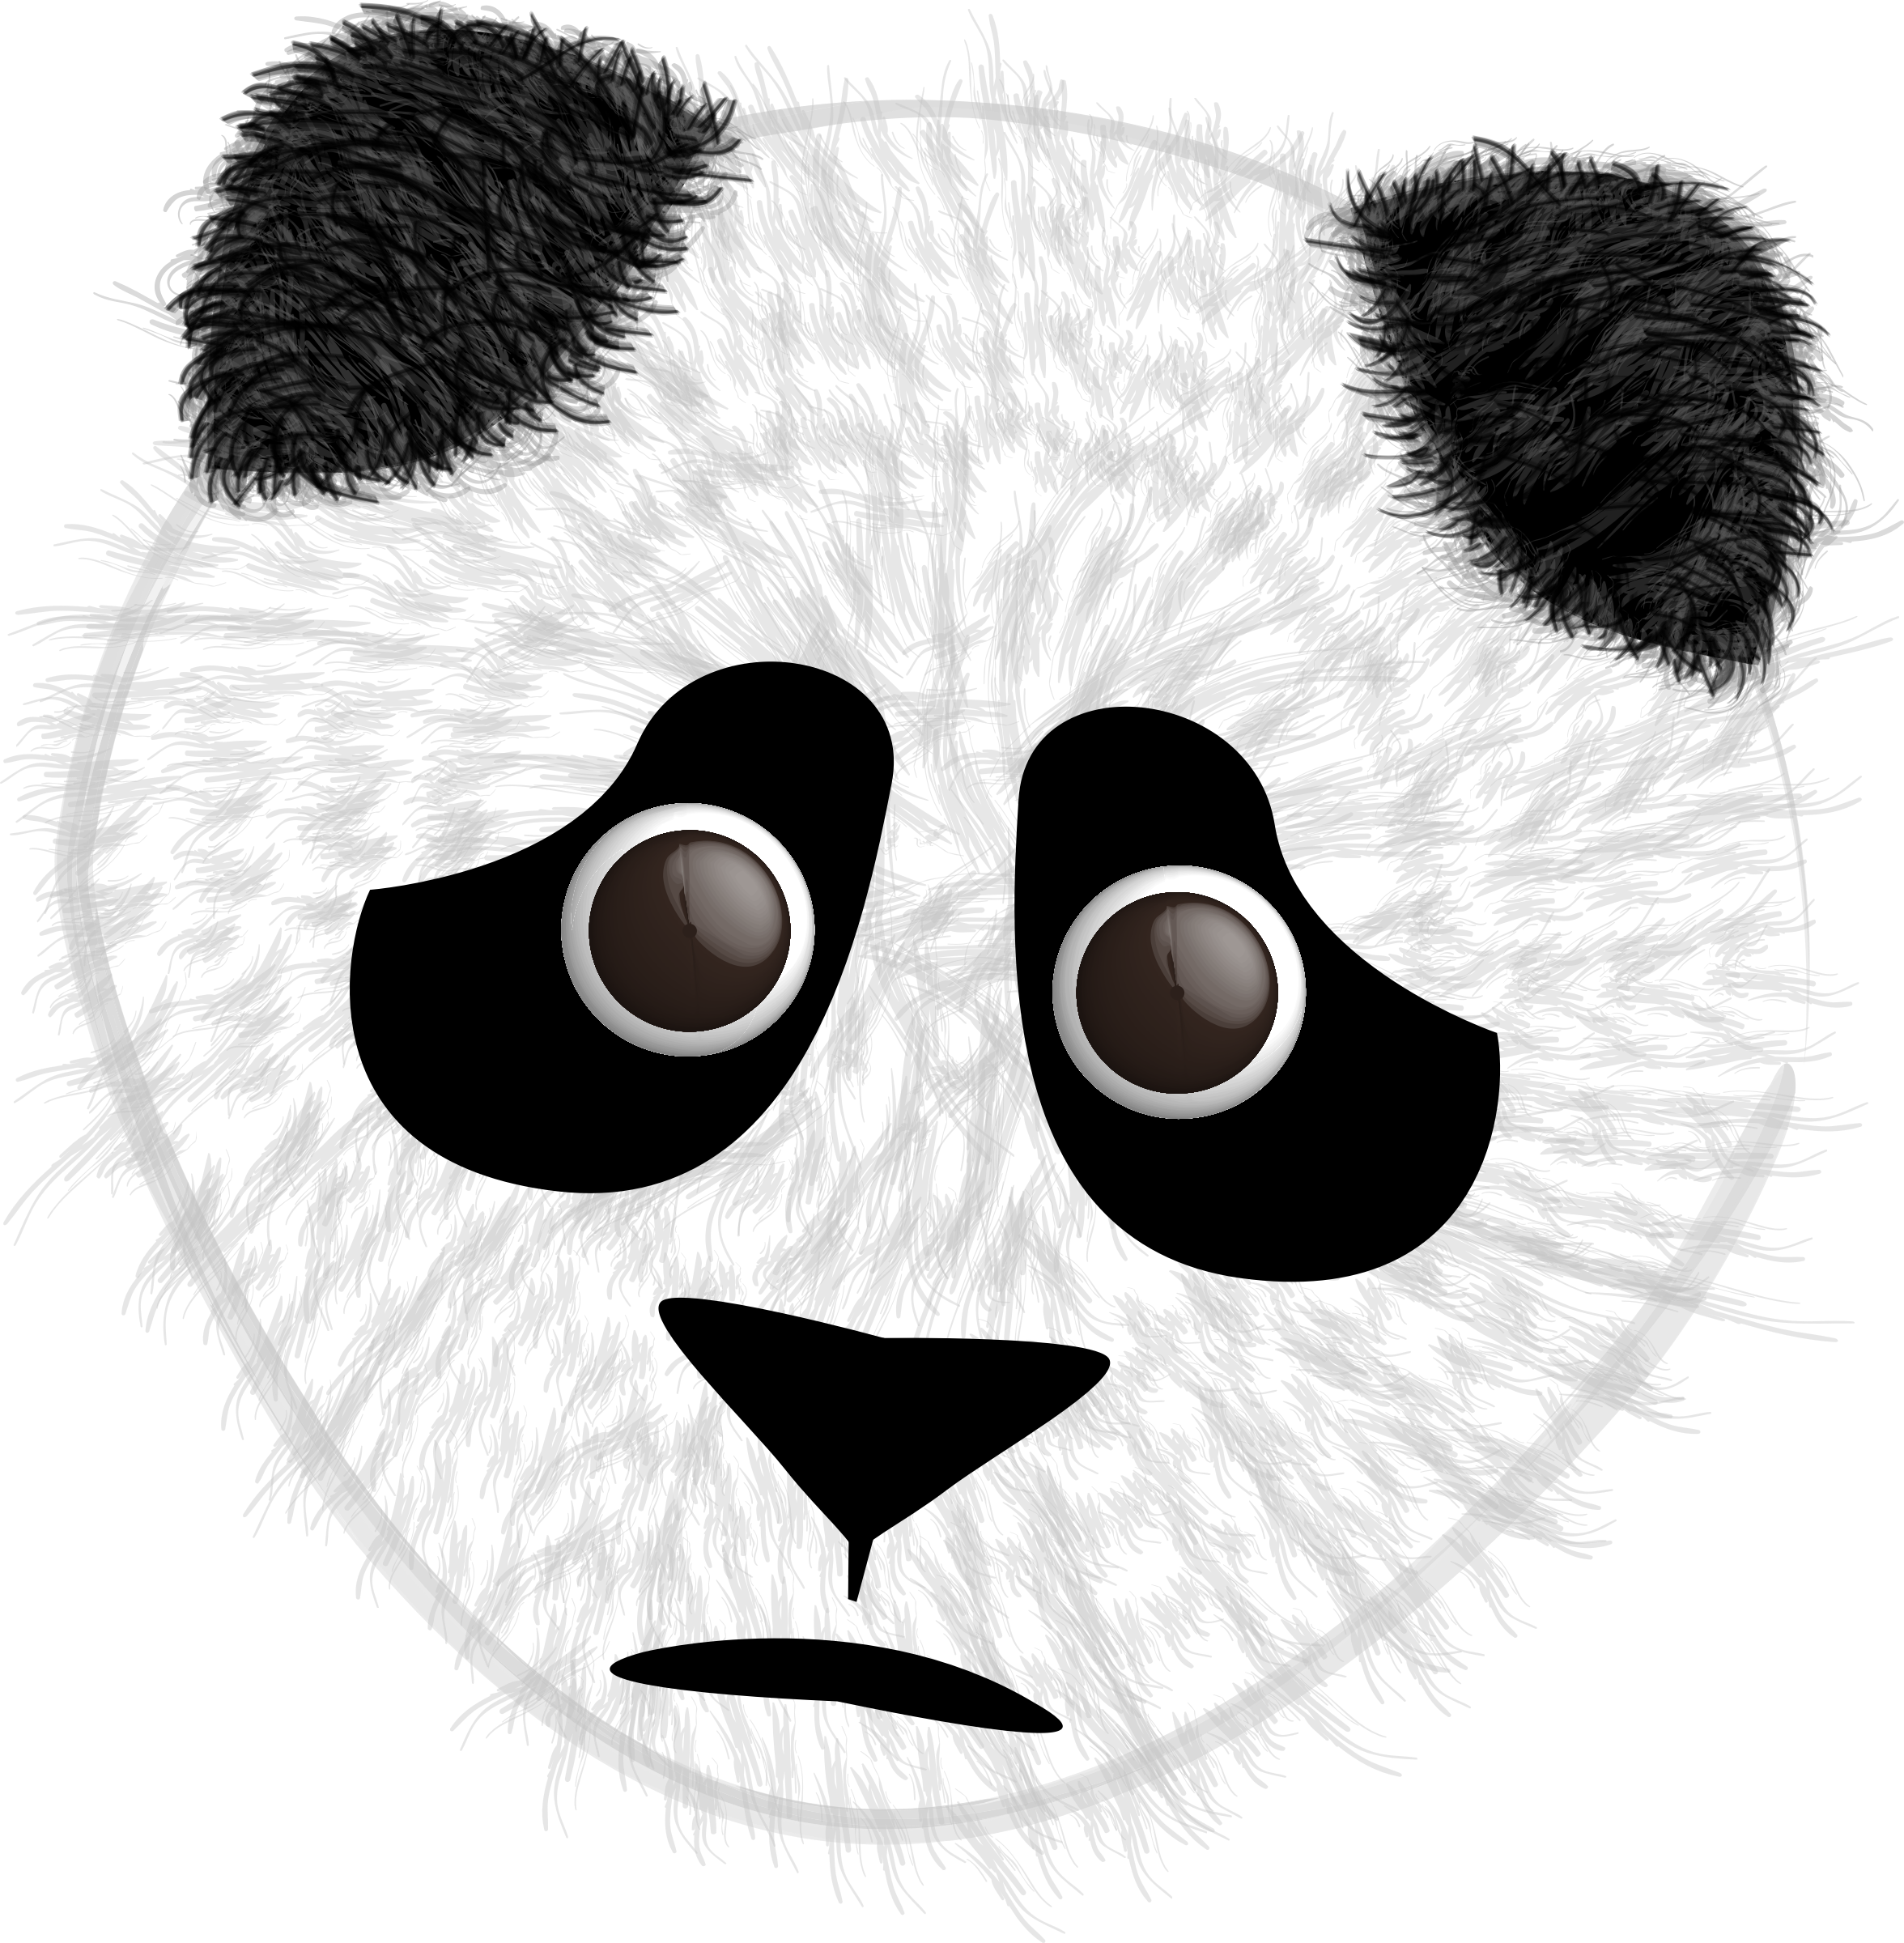 https://openclipart.org/image/2400px/svg_to_png/220598/bravepanda2.png